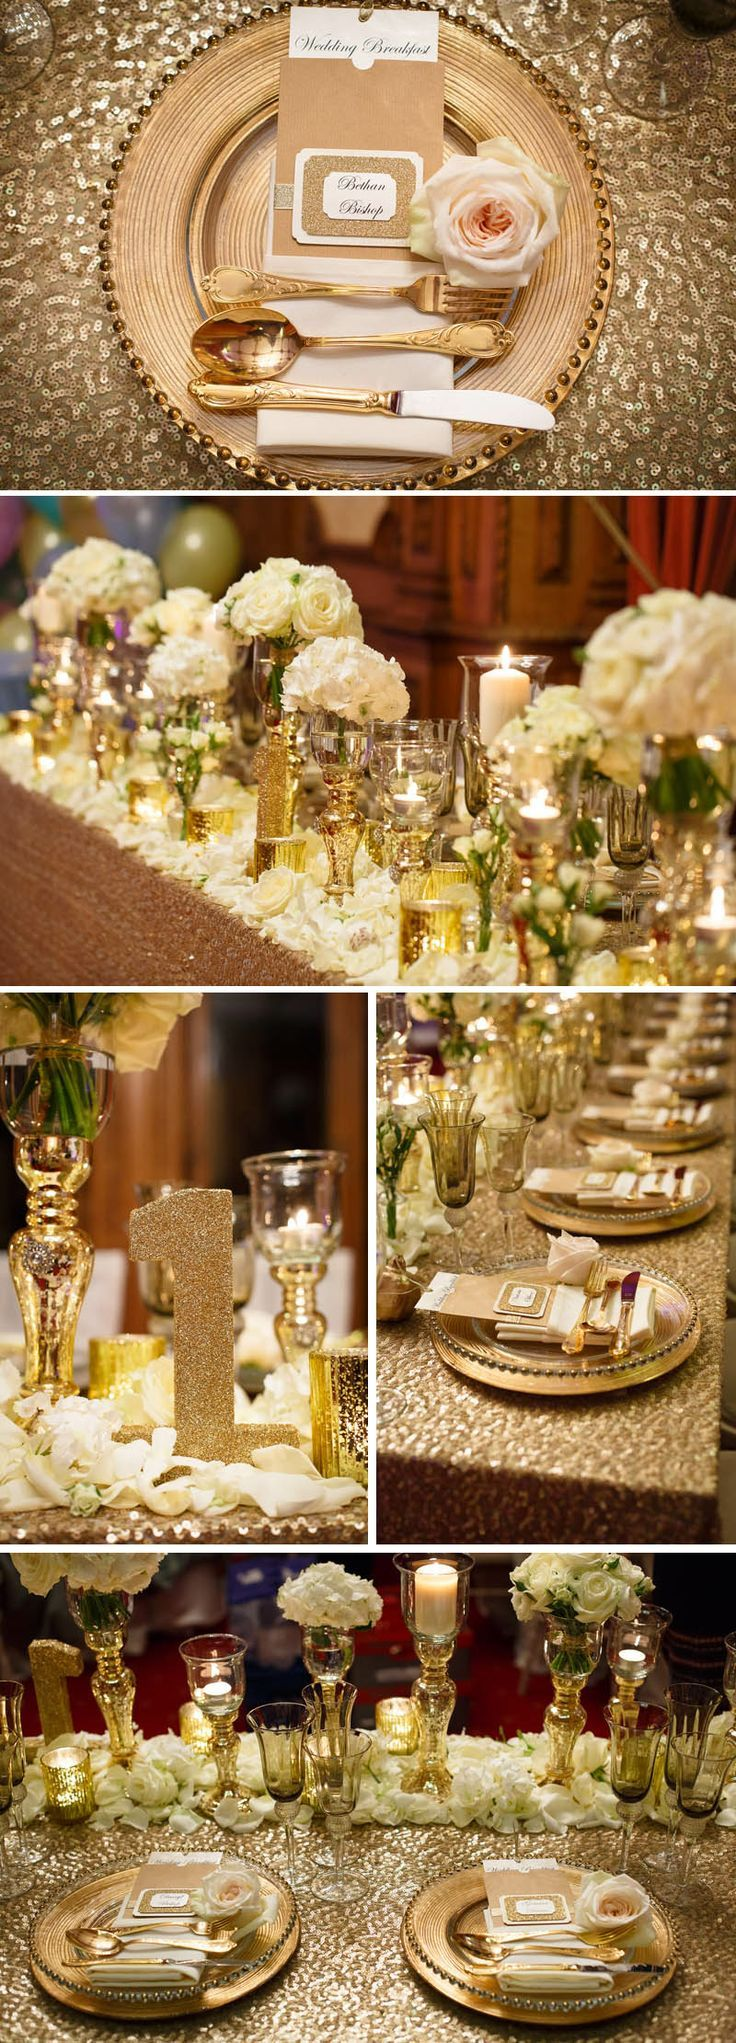 Glamorous gold wedding ideas #wedding #reception #goldwedding #glamwedding #weddingdecor